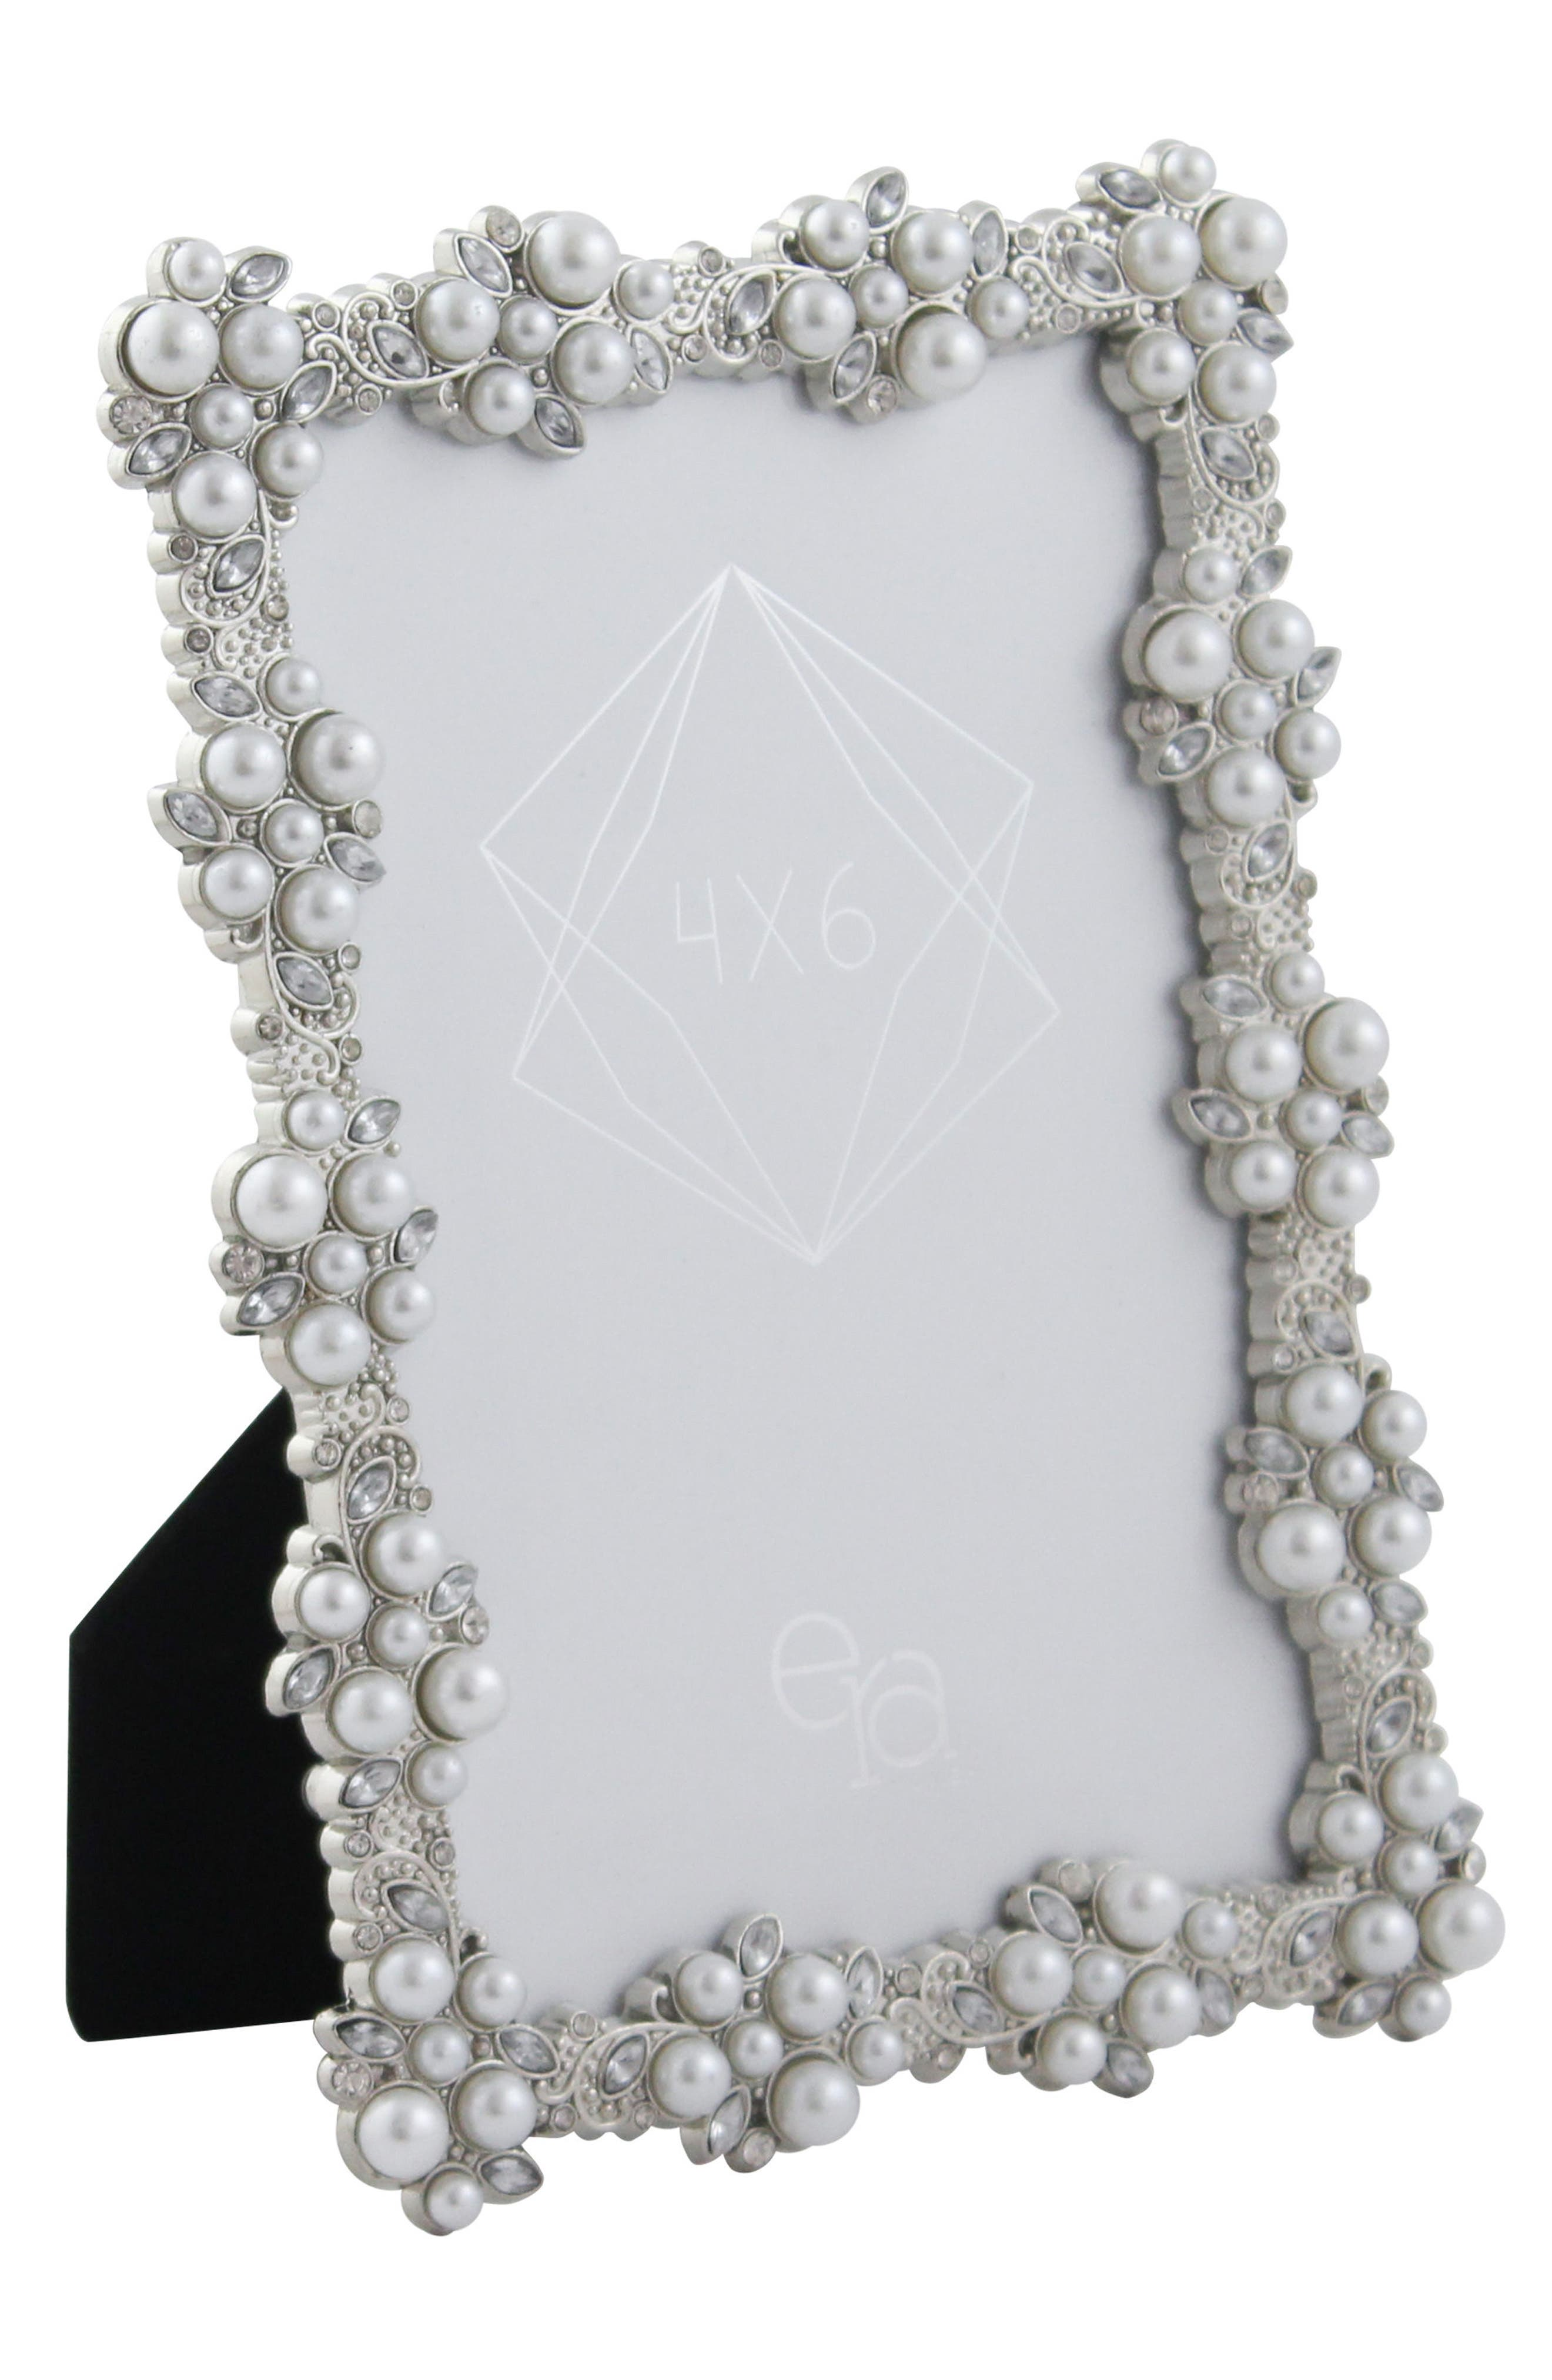 Main Image - Era Home Crystal & Imitation Pearl Picture Frame